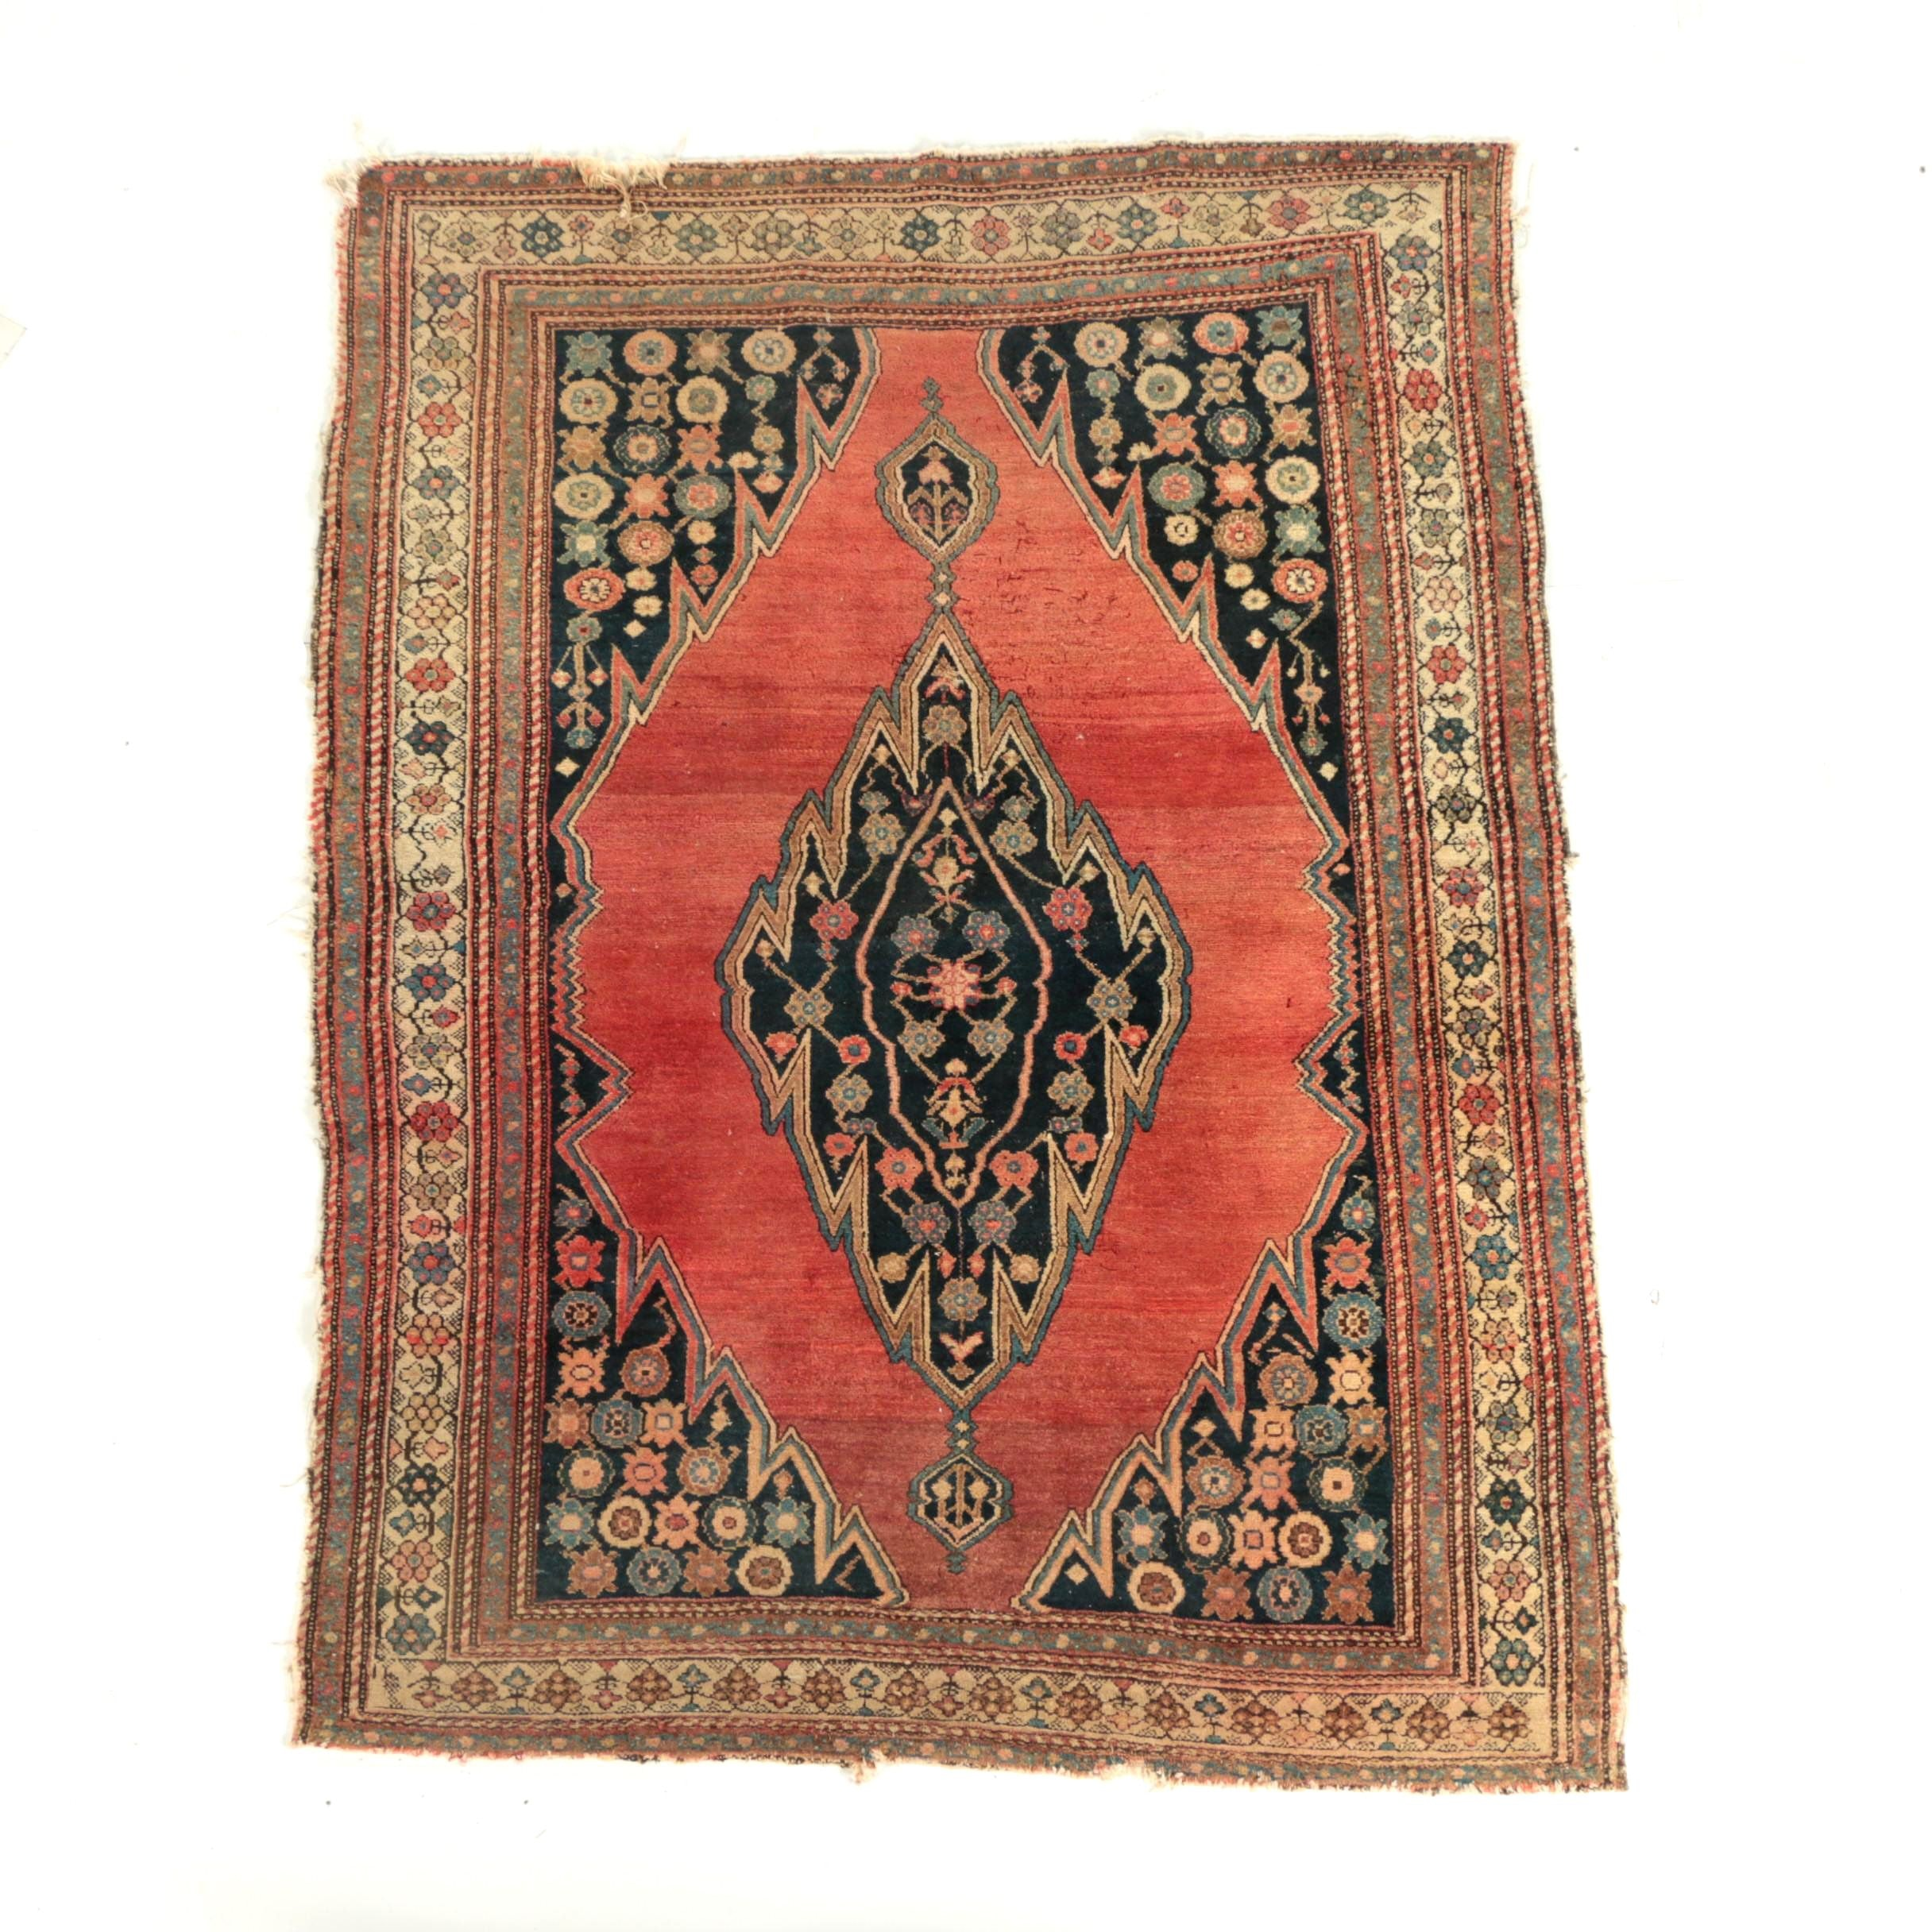 Semi-Antique Hand-Knotted Persian Kerdar Wool Area Rug